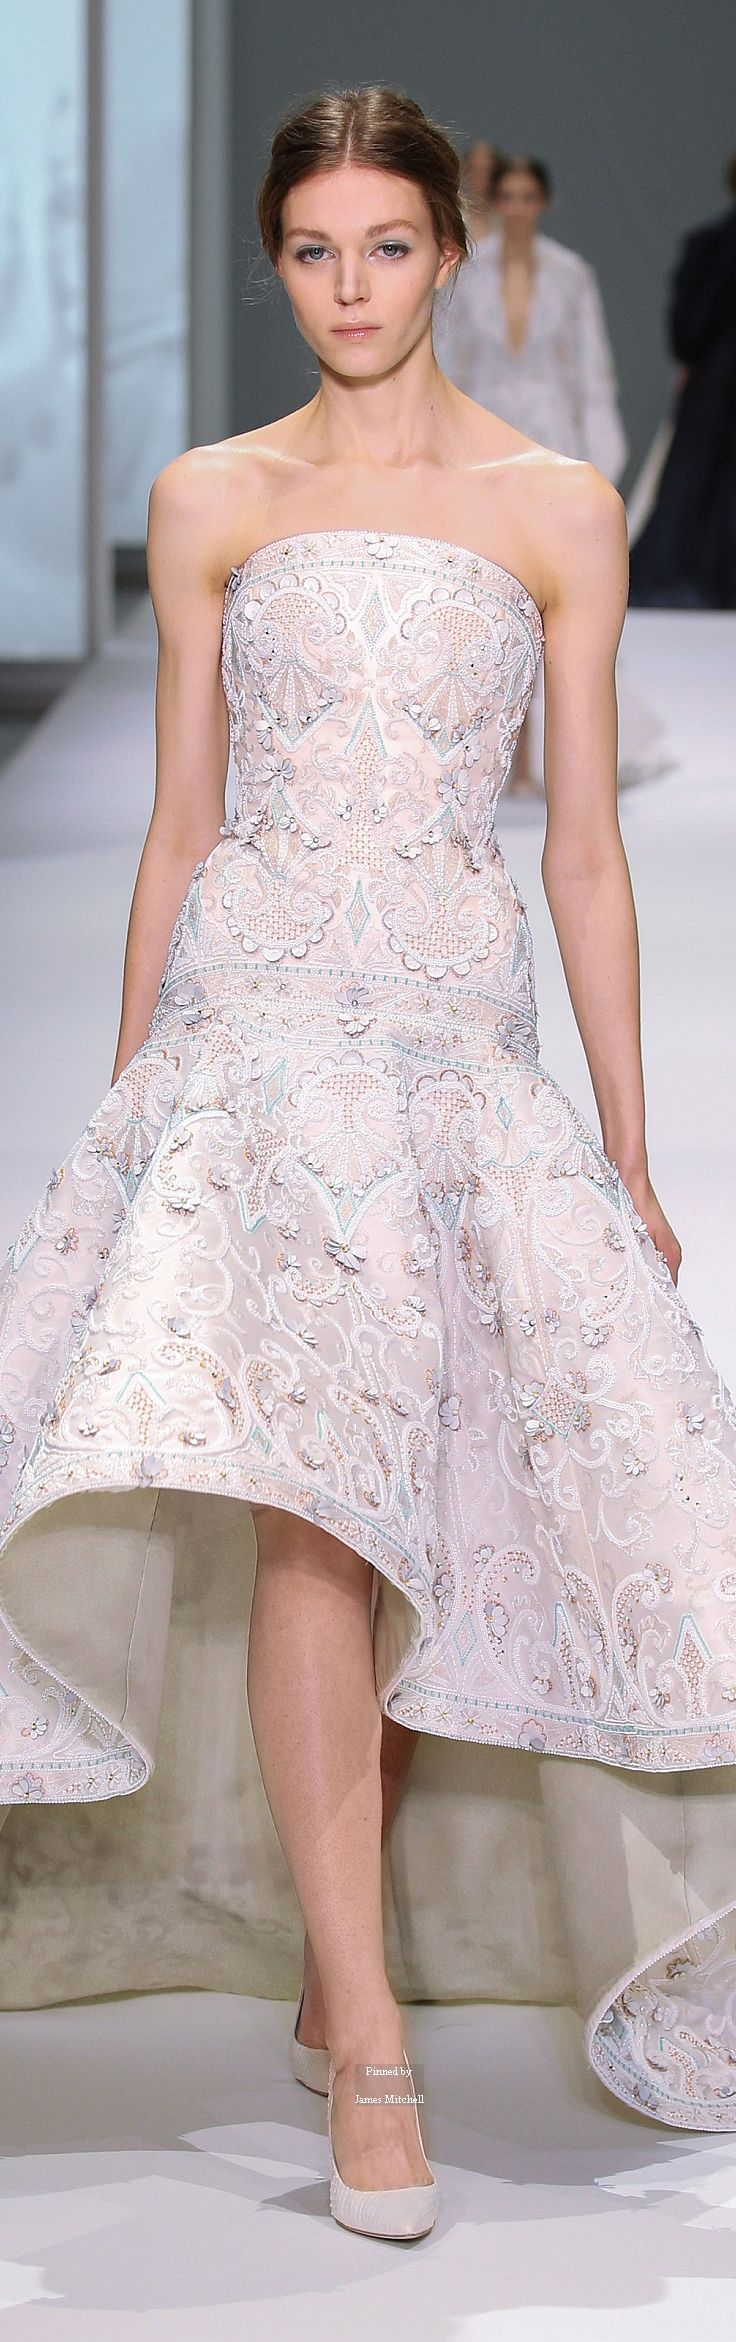 Ralph & #Russo Haute #Couture Spring Summer 2015 #collection